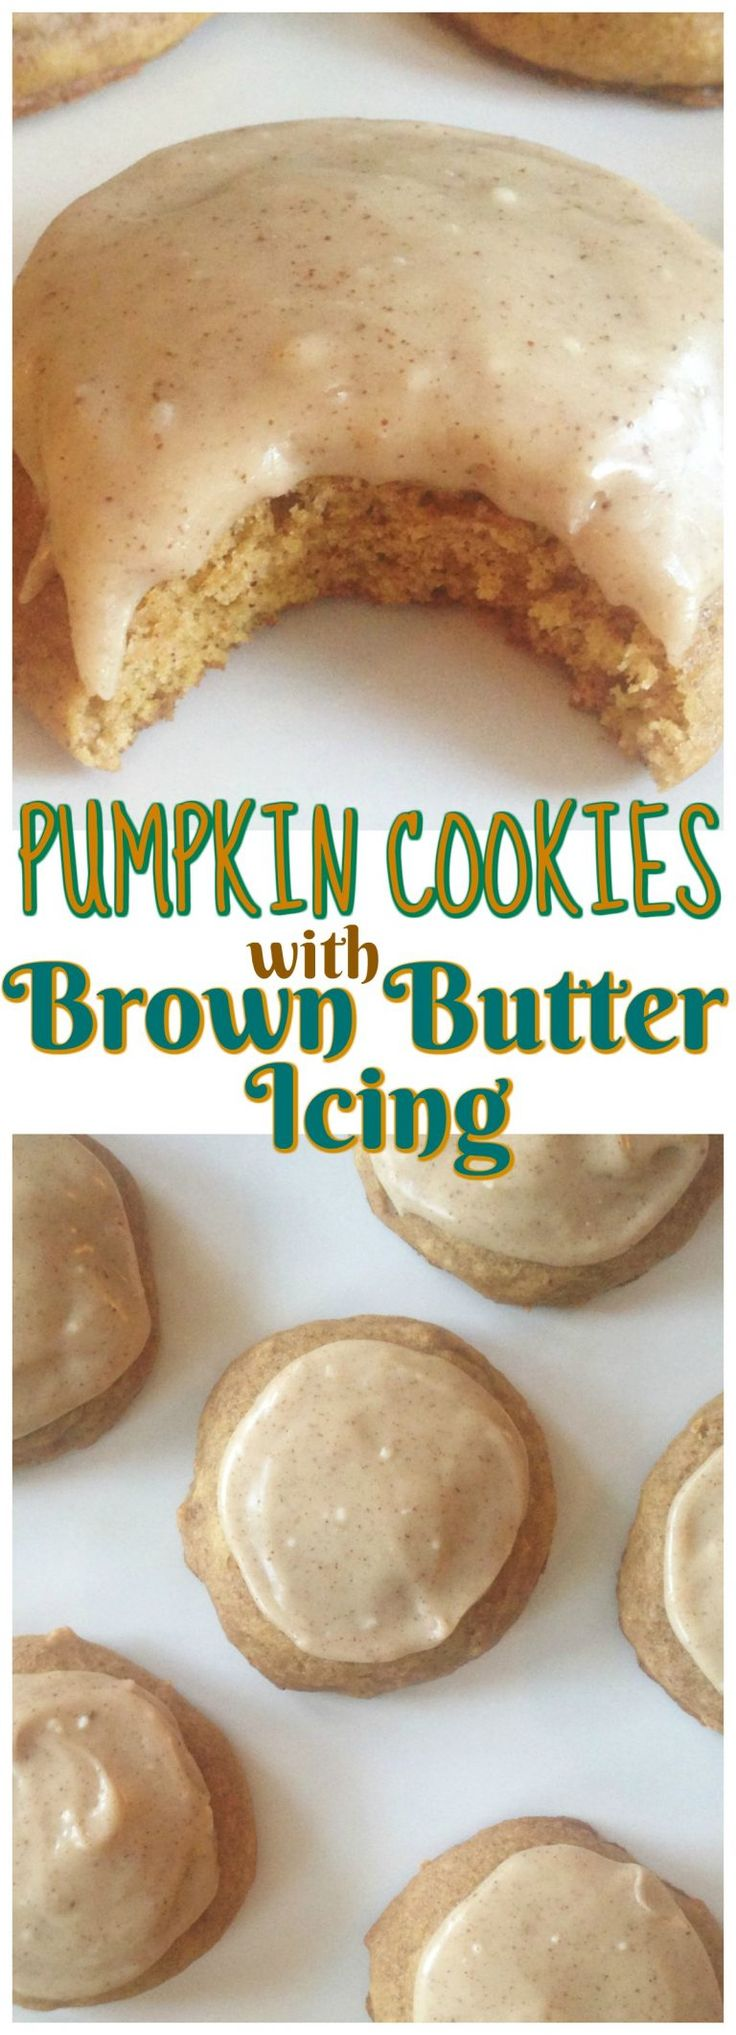 Pumpkin Cookies with Brown Butter Icing recipe image thegoldlininggirl… pin 2